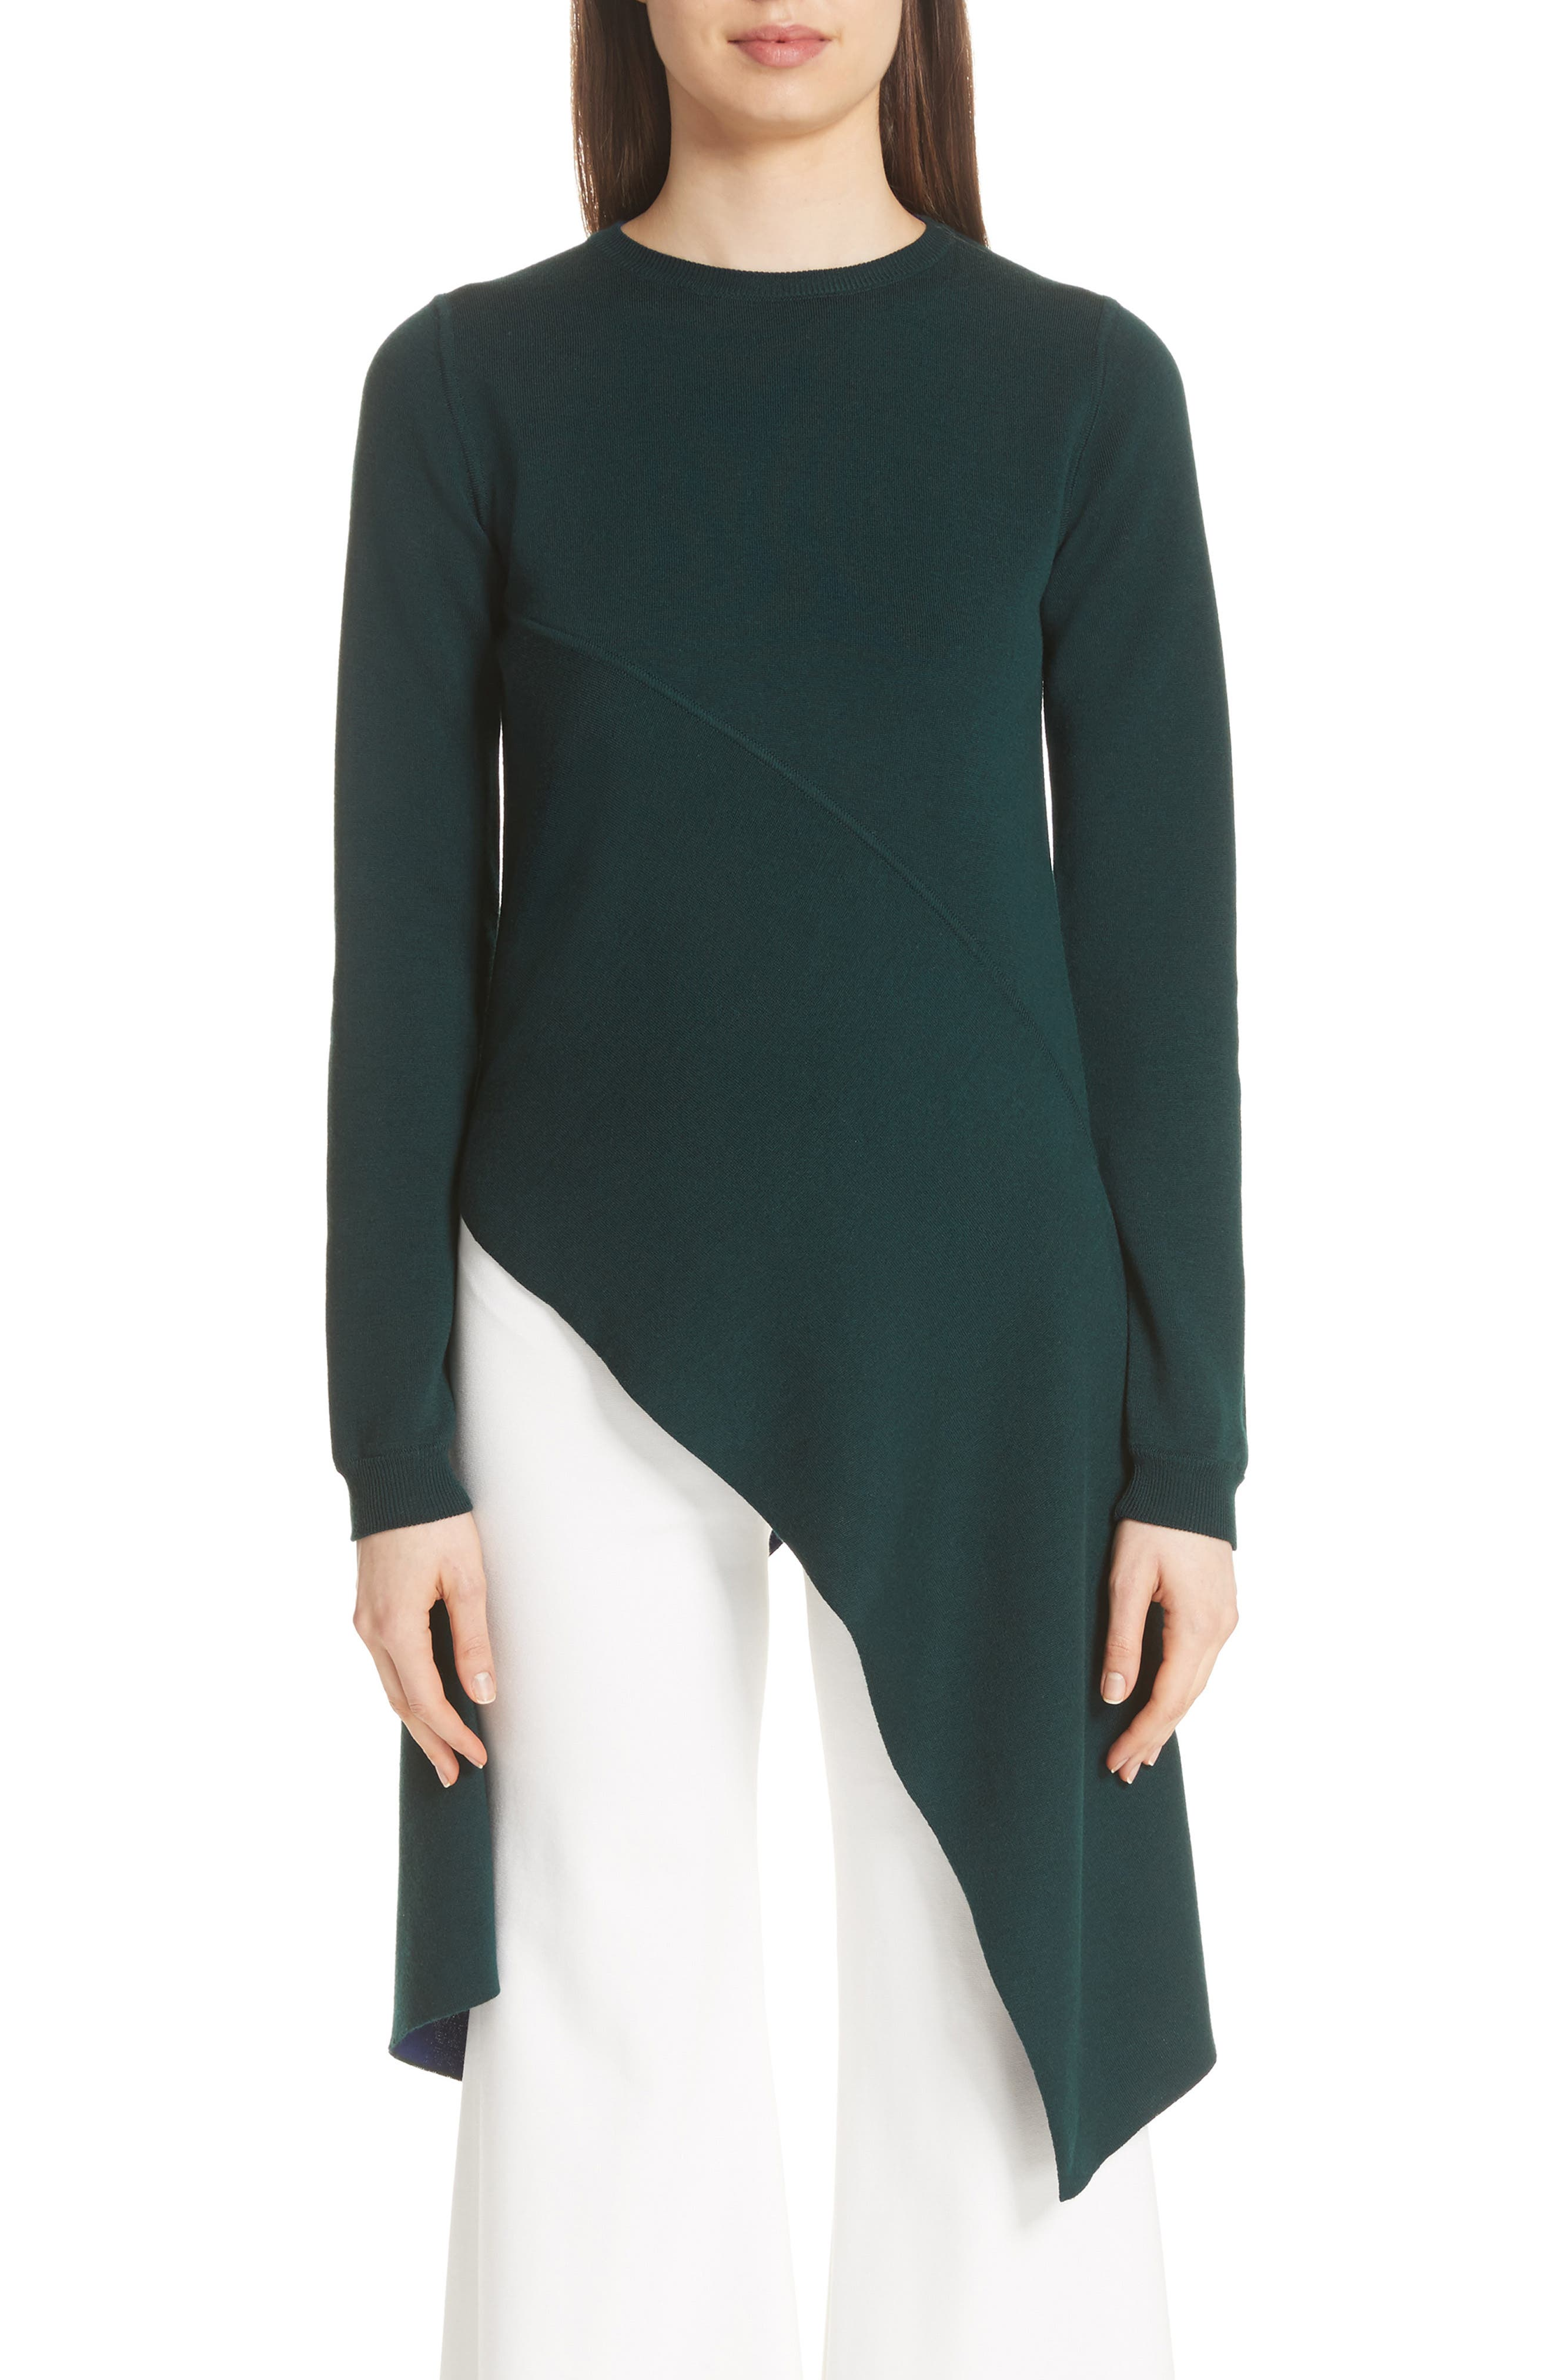 Main Image - Rosetta Getty Reversible Knit Asymmetrical Top